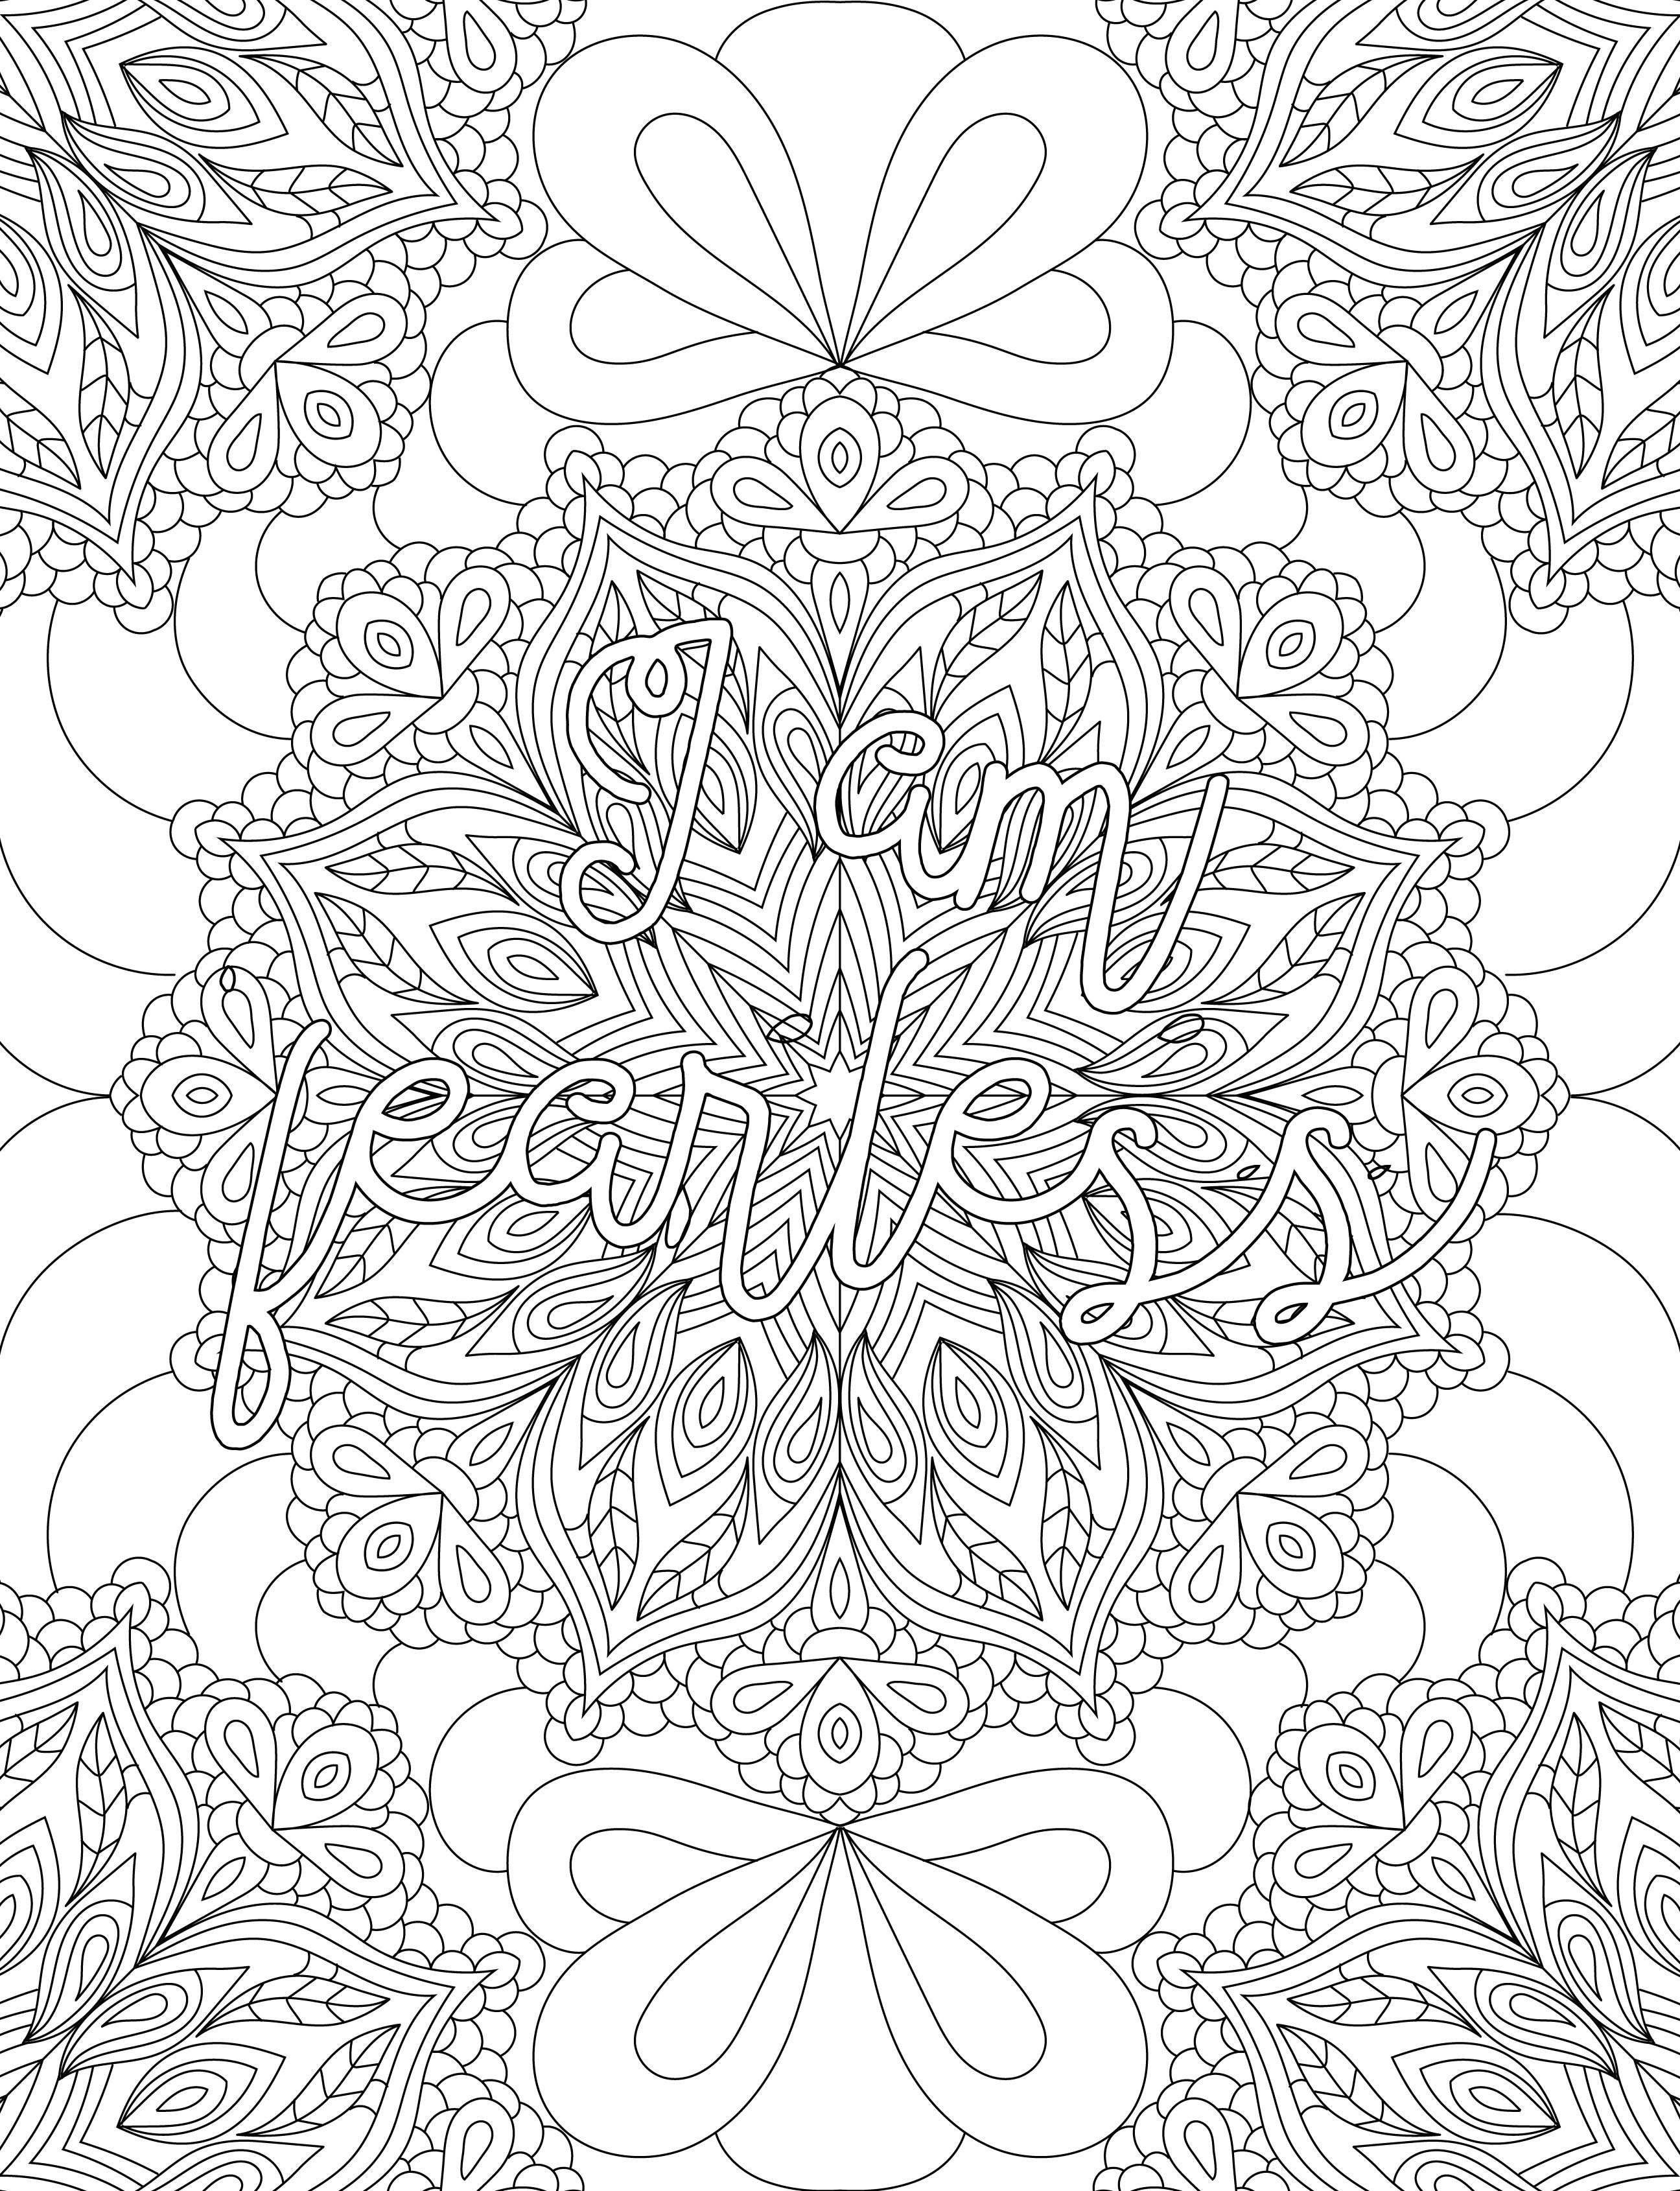 Pin On Affirmations Coloring Book For Adults